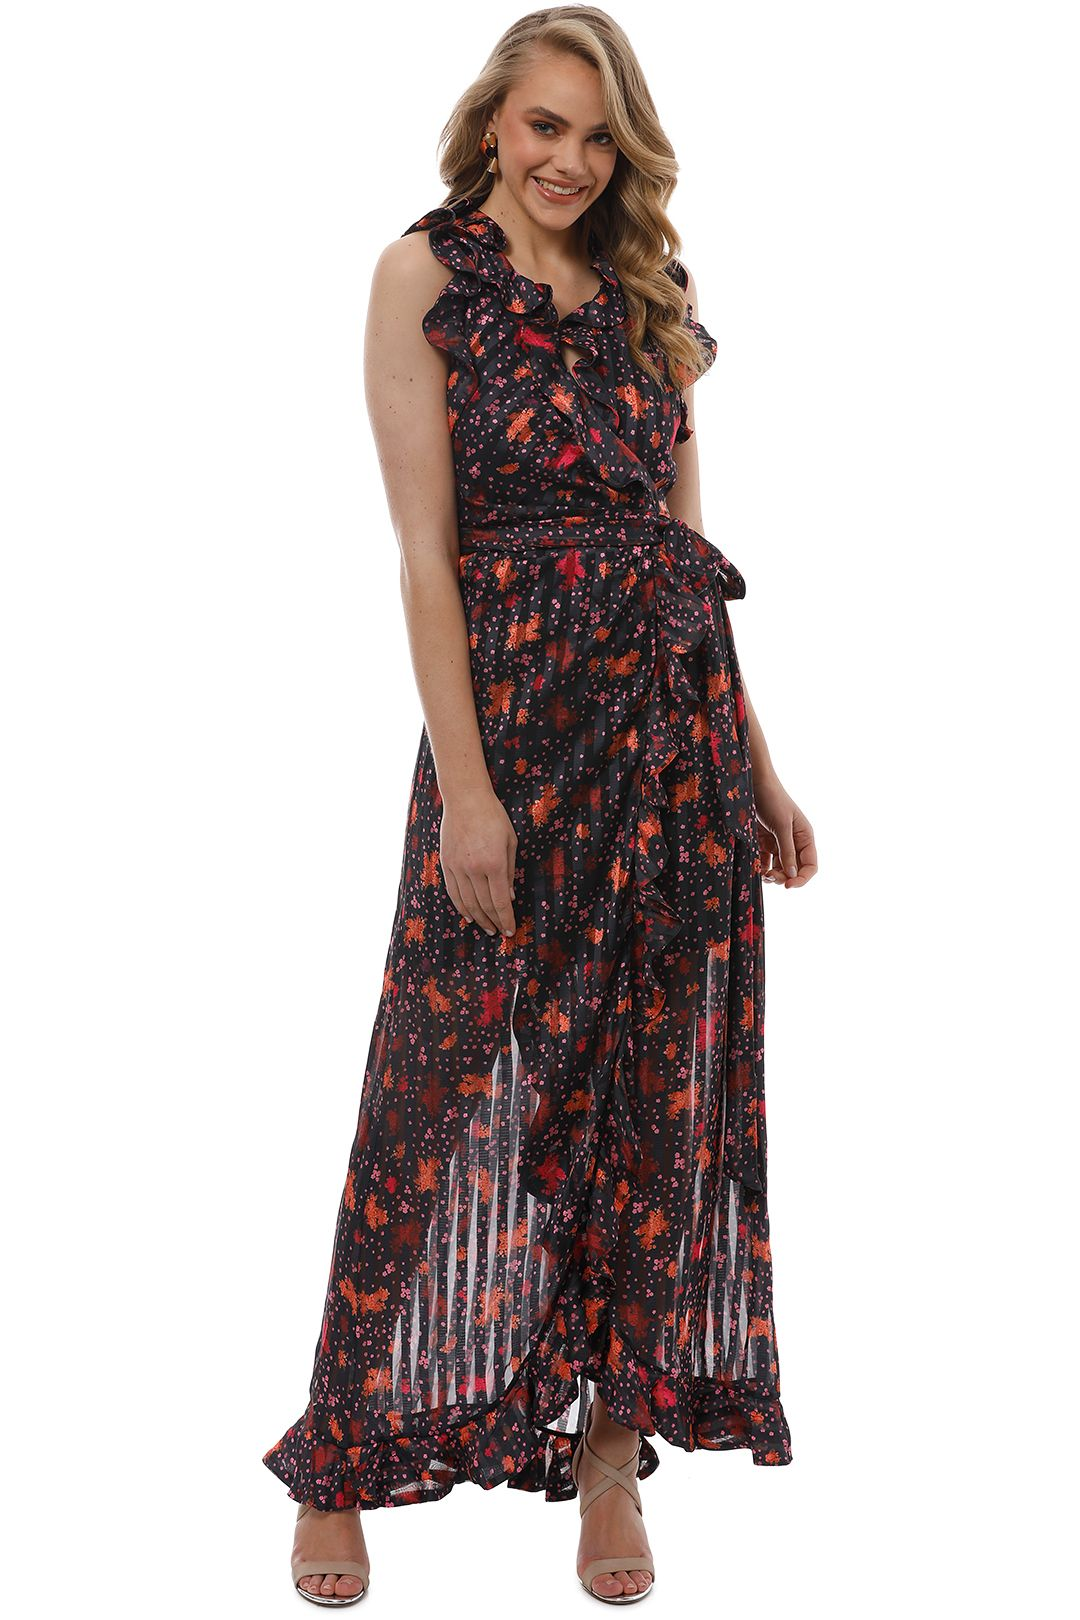 CMEO Collective - Significant Gown - Black Rose - Front